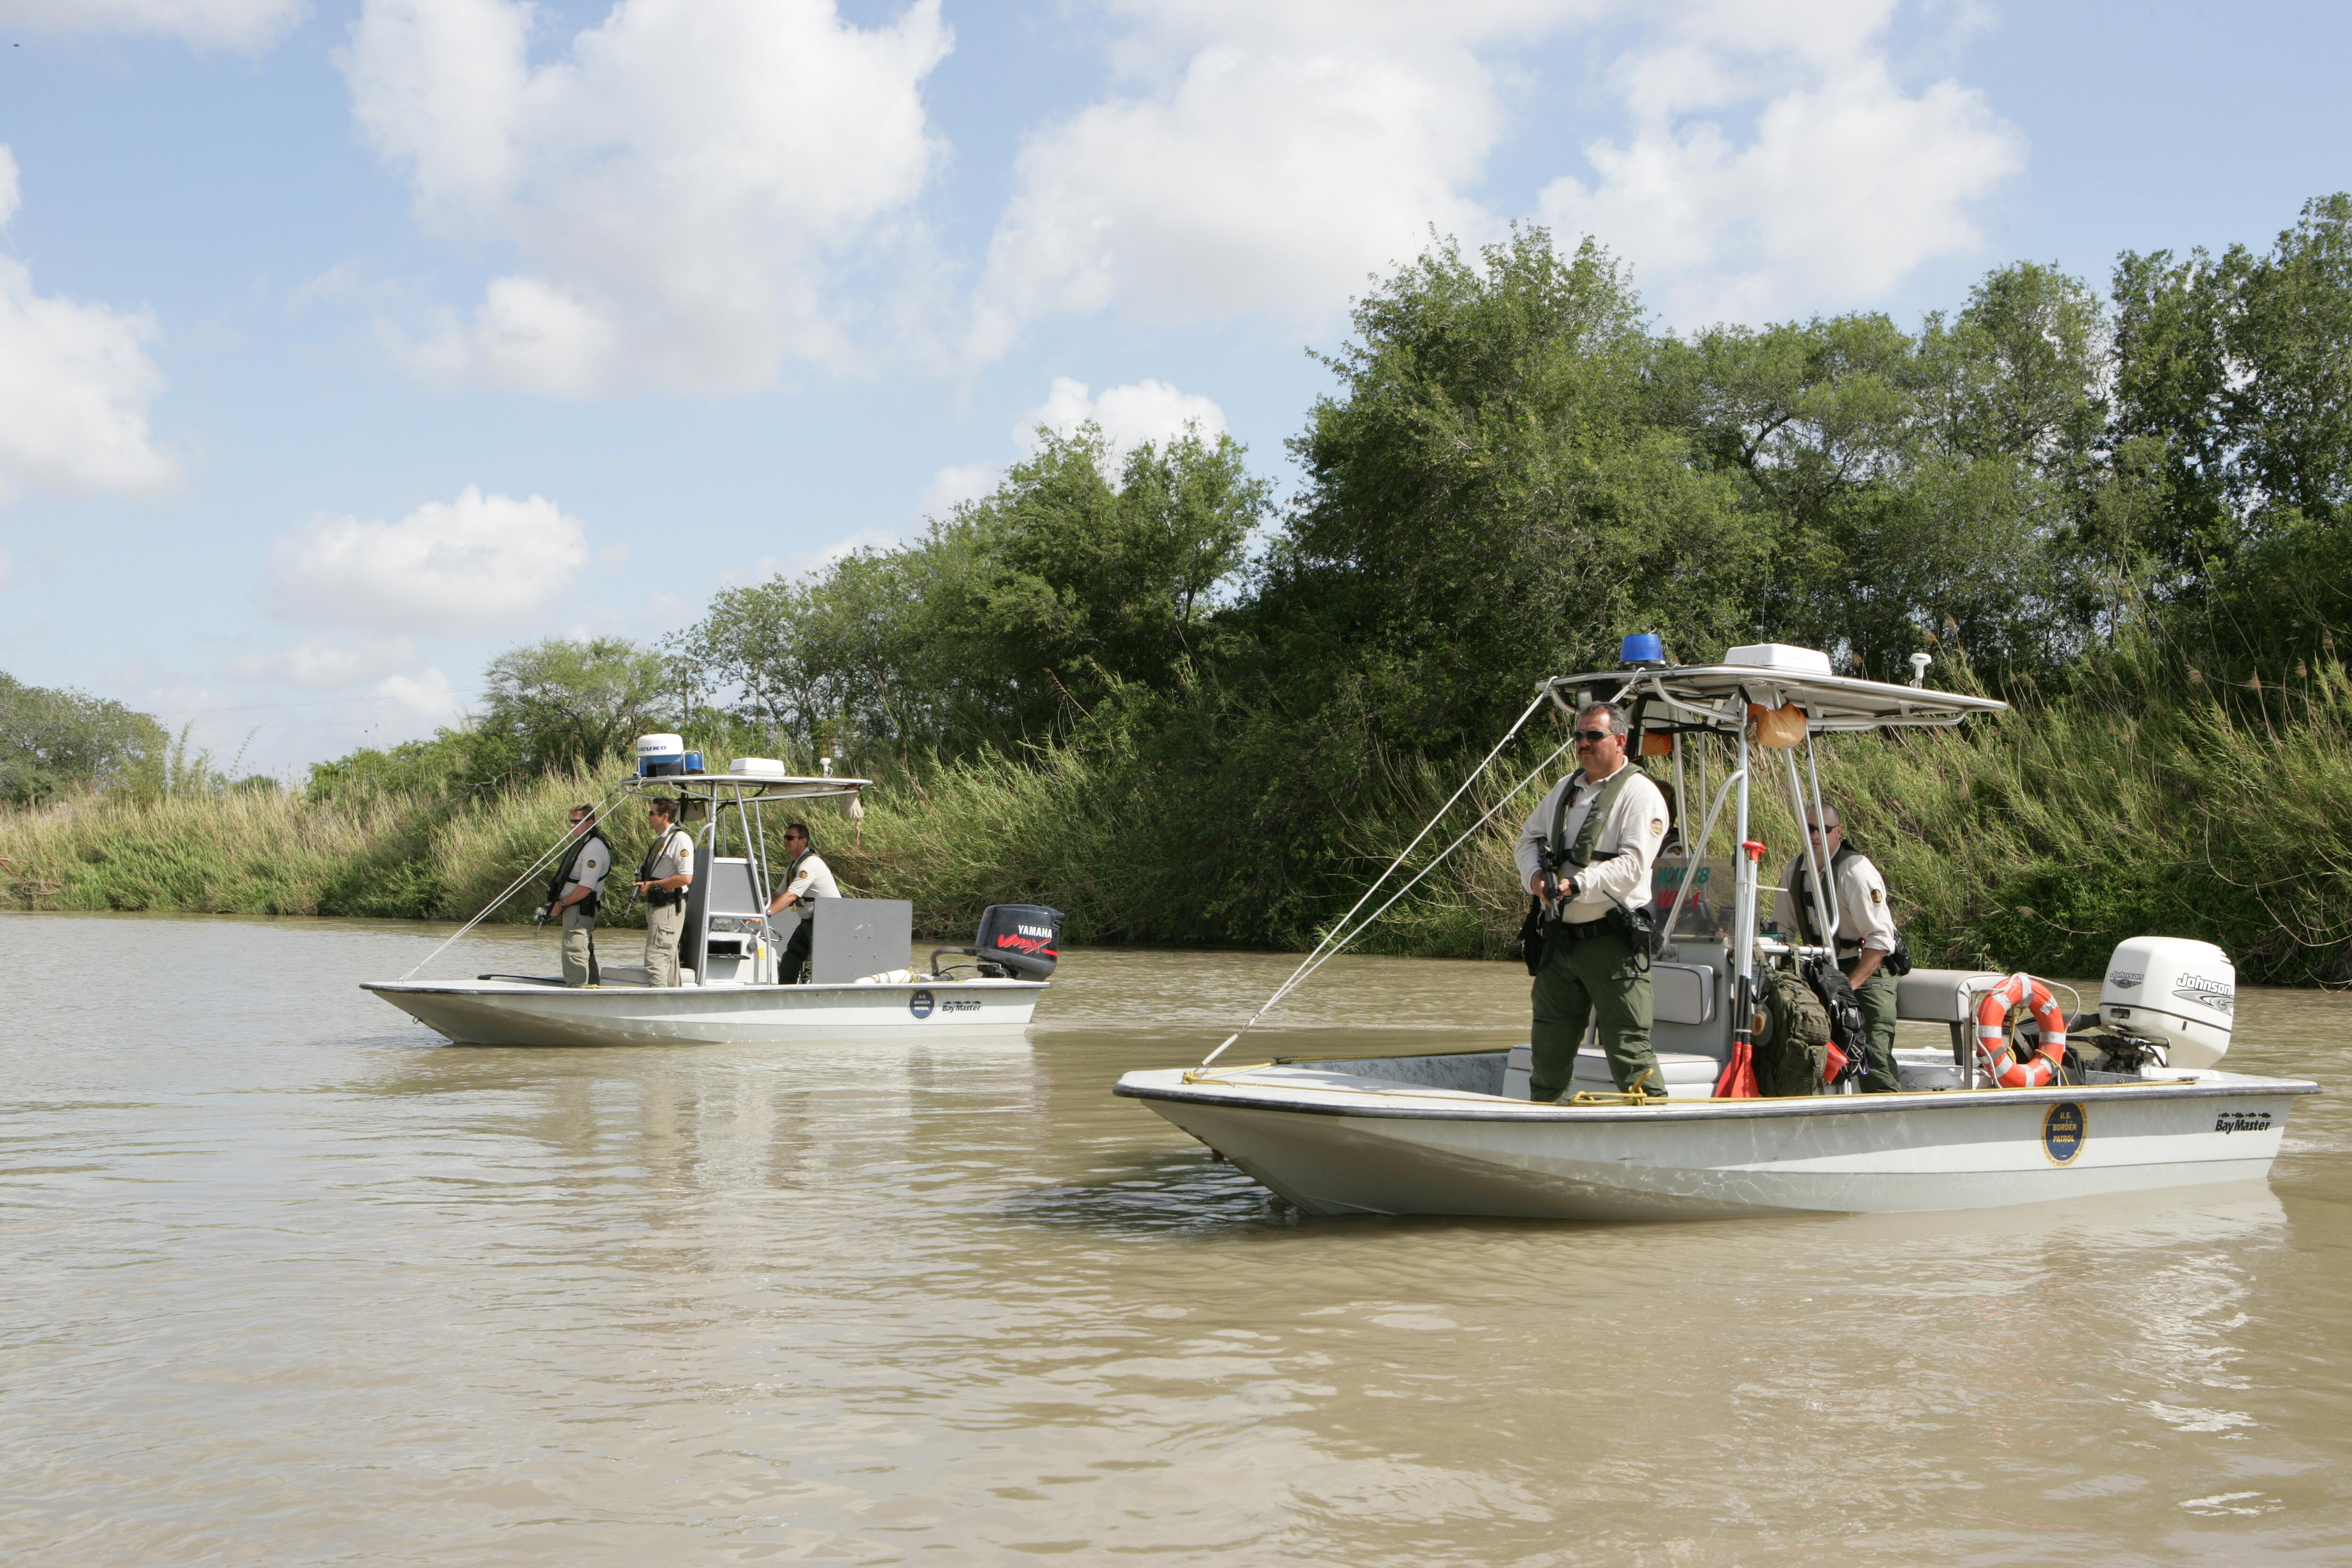 CBP Border Patrol Marine units face toward Mexico to provide cover for other agents on the U.S. side of the river conducting an investigation.